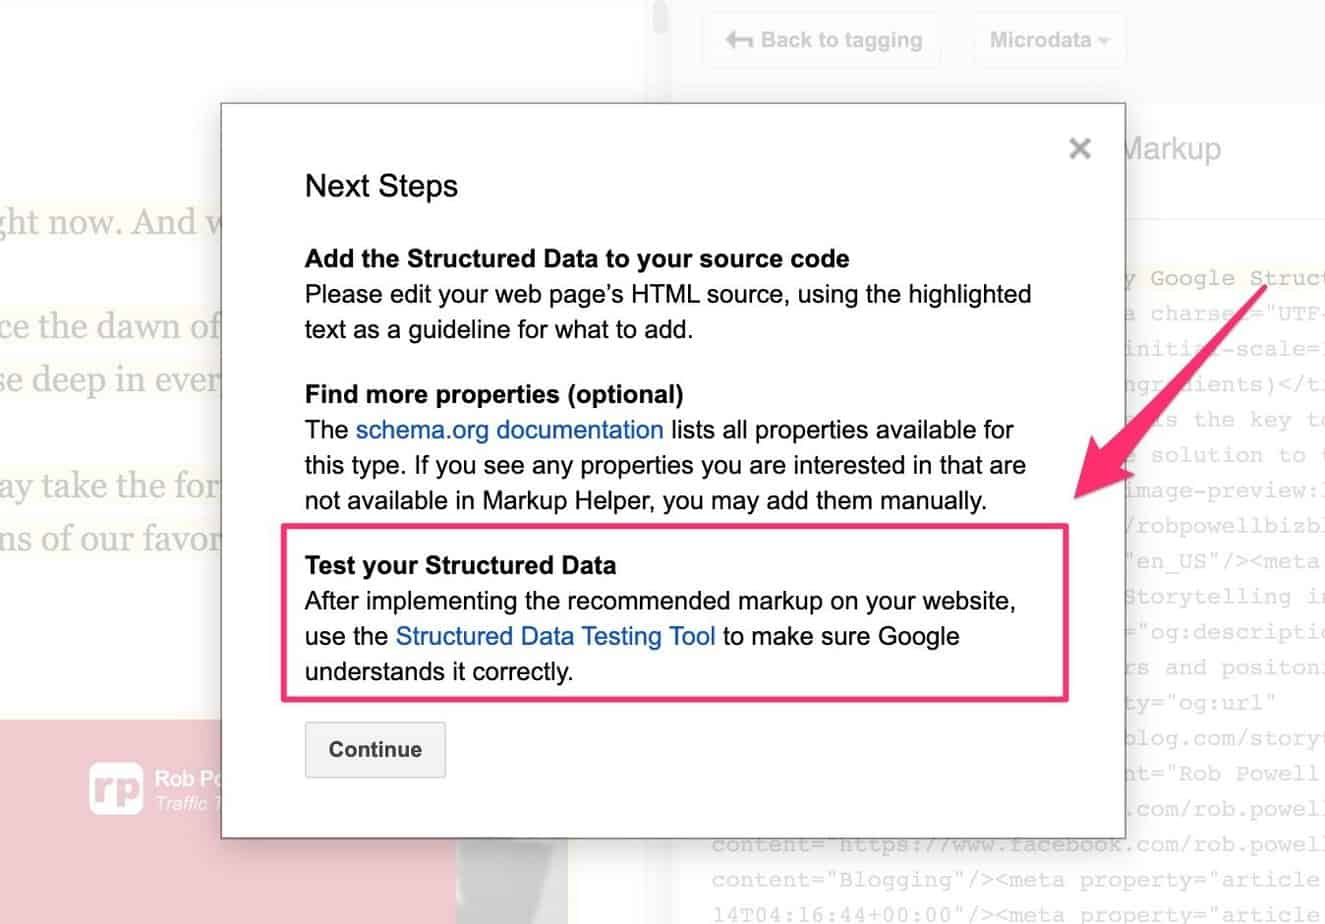 Google's structured data testing tool